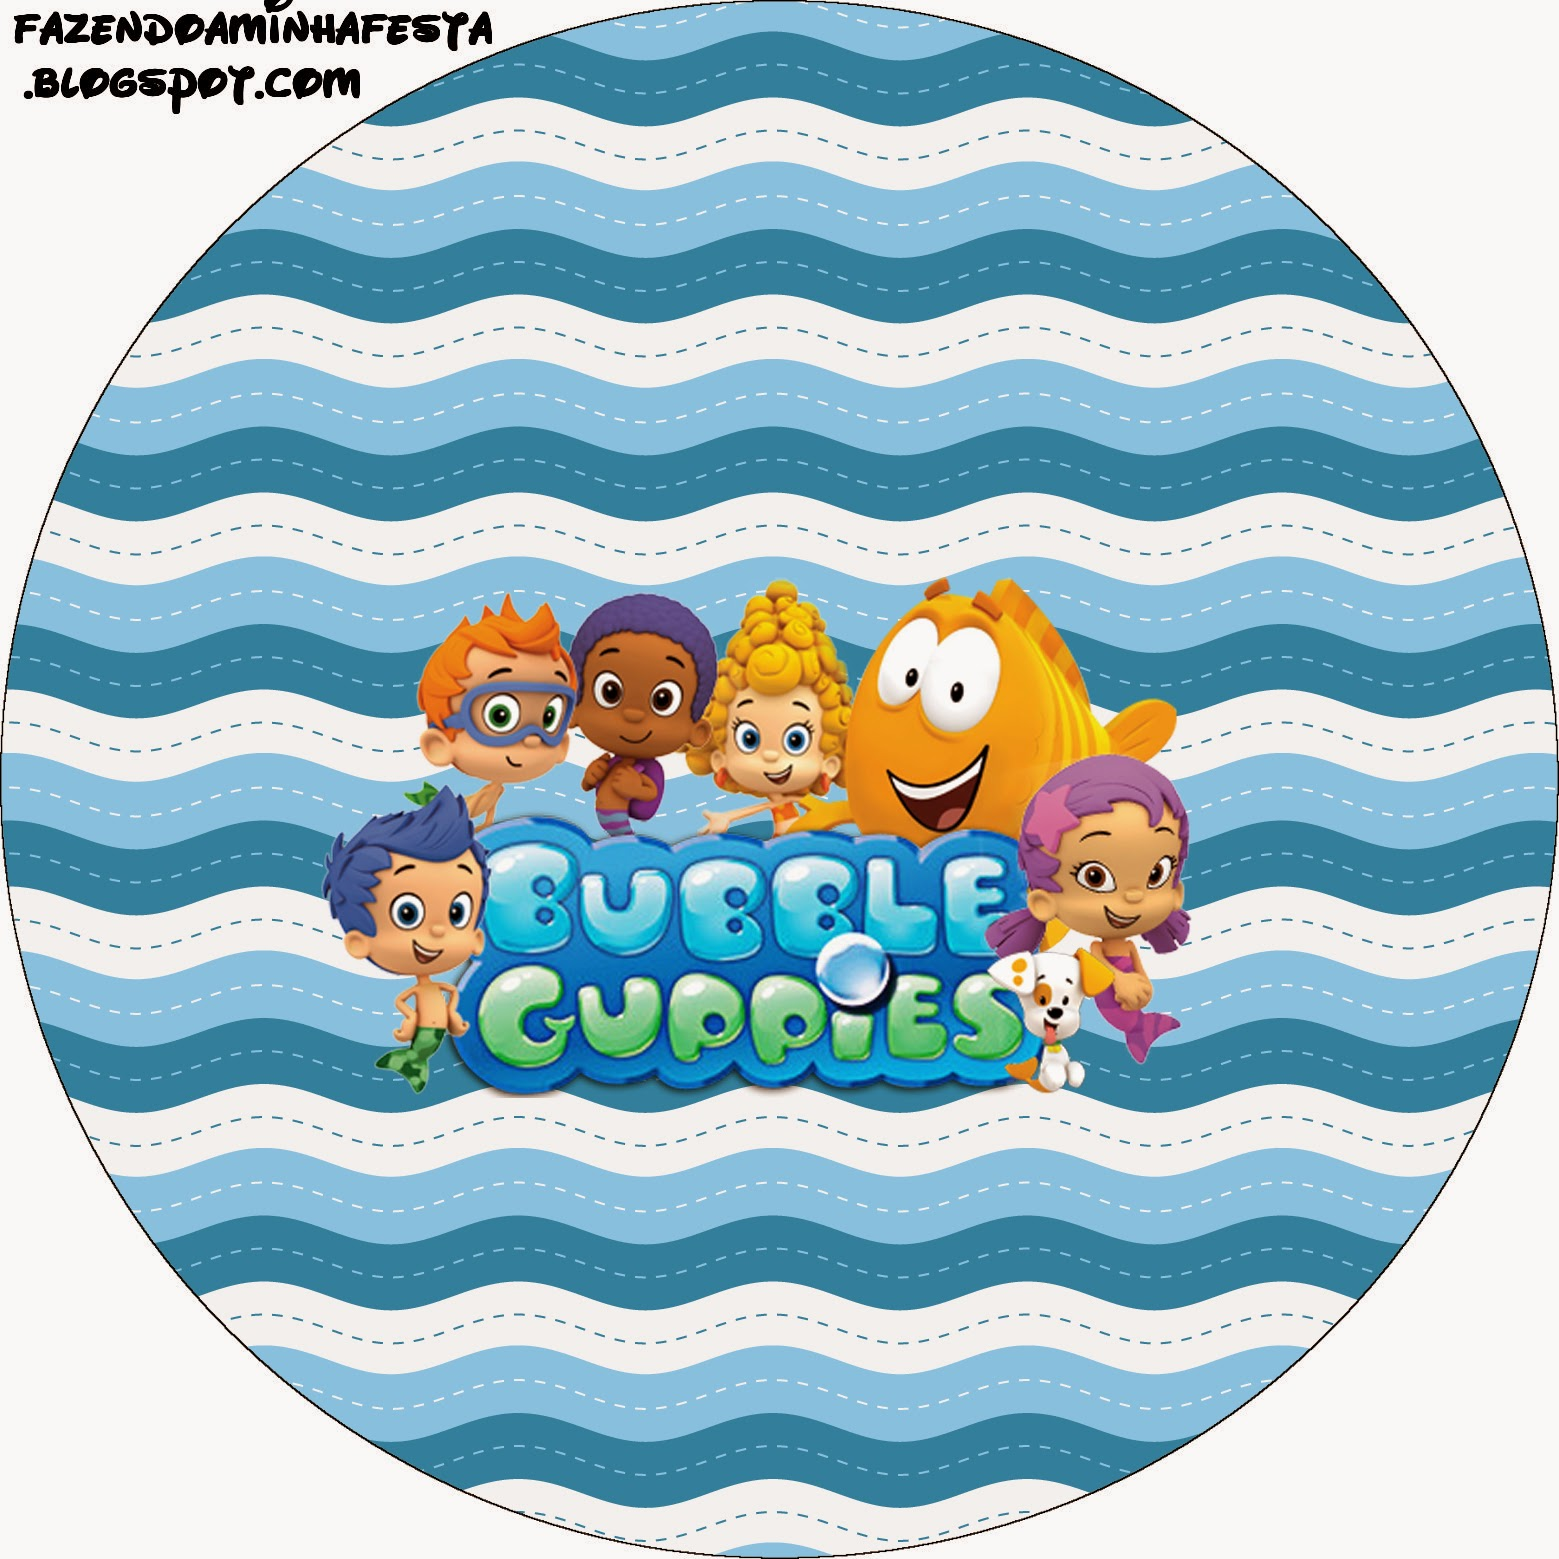 picture regarding Bubble Guppies Printable titled Bubble Guppies Cost-free Printable Sweet Bar Labels. - Oh My